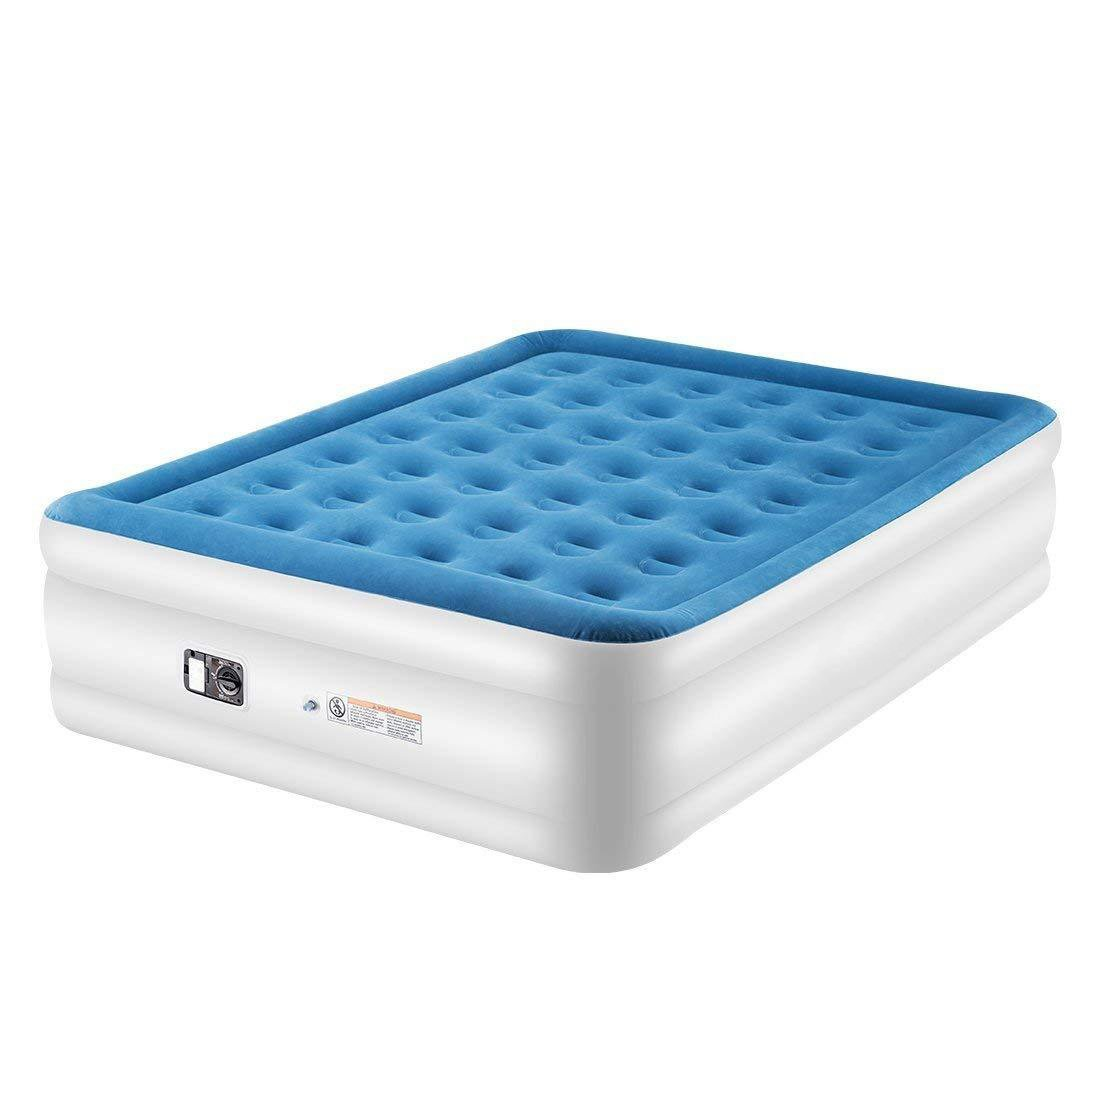 Blue Air Mattress,80 x 60 x 22 Inches